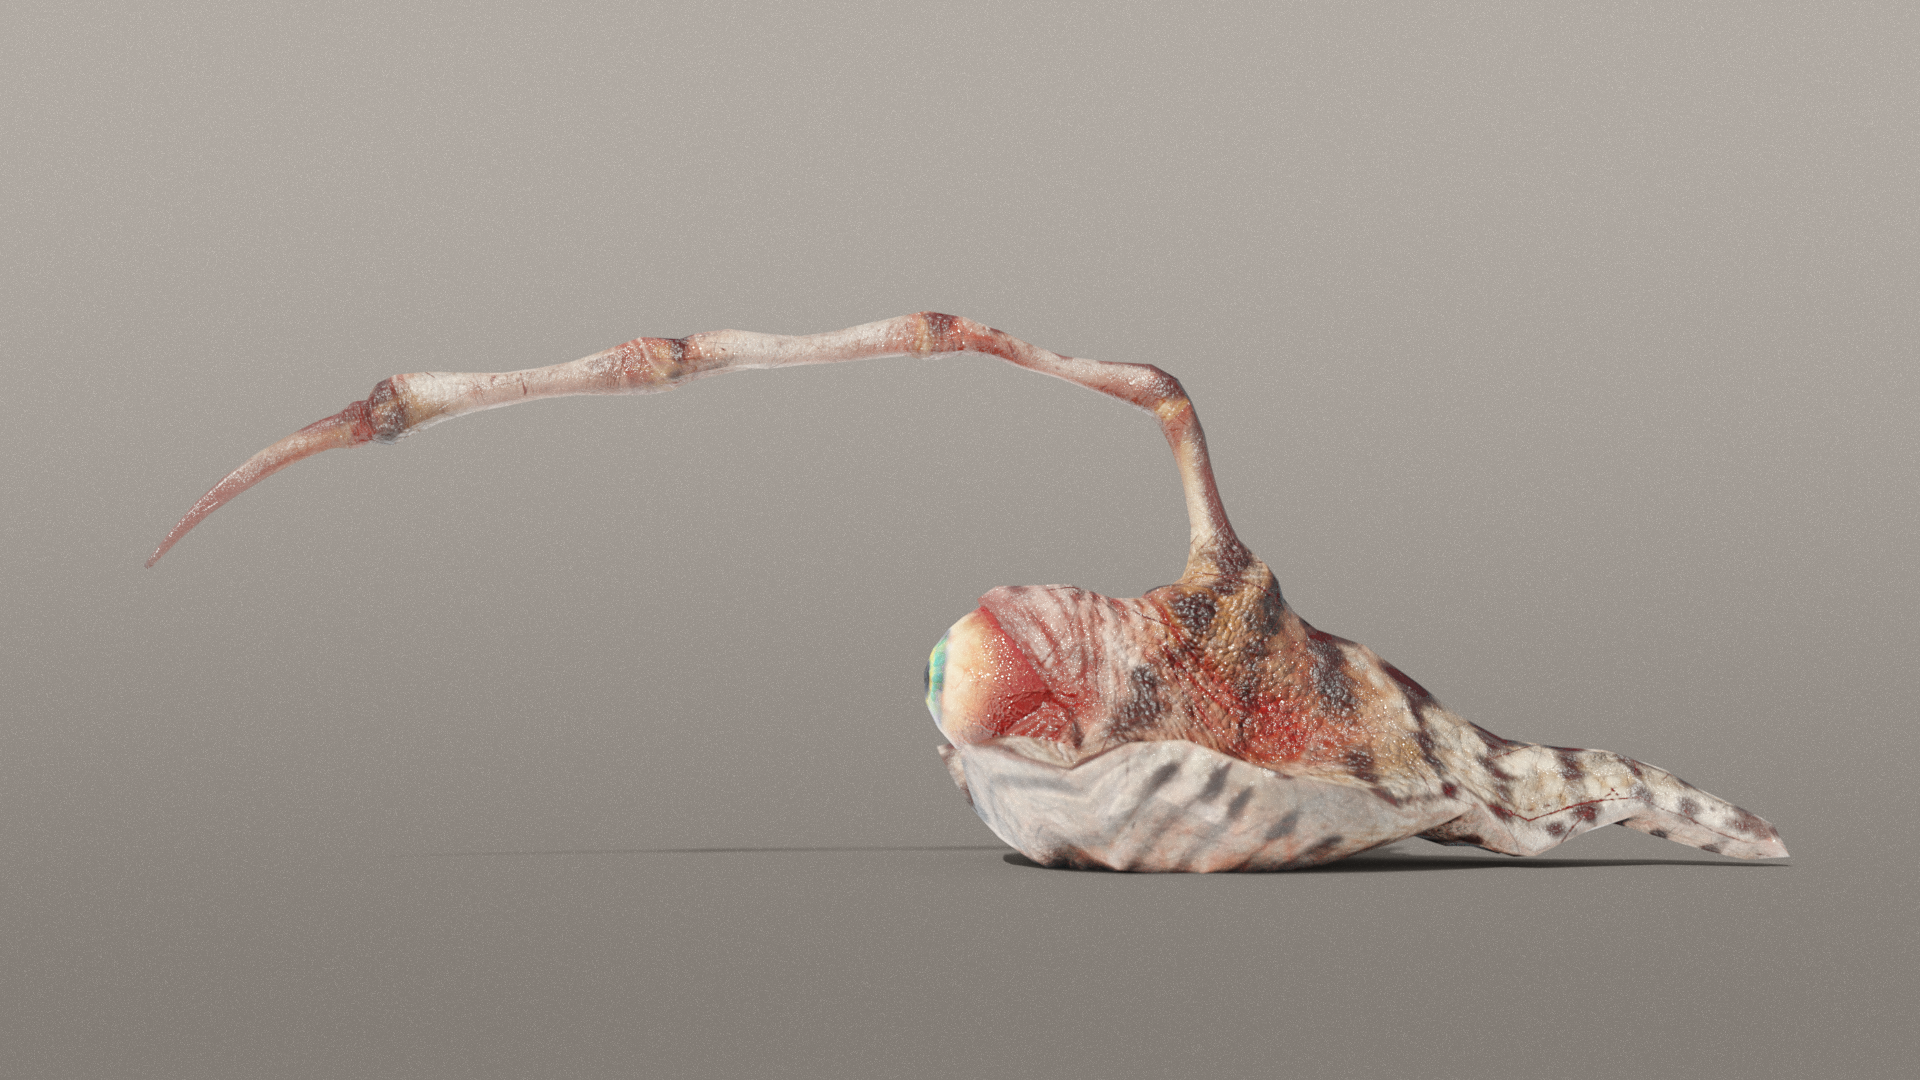 Attacking Eyeball Spine Slug 3d Model